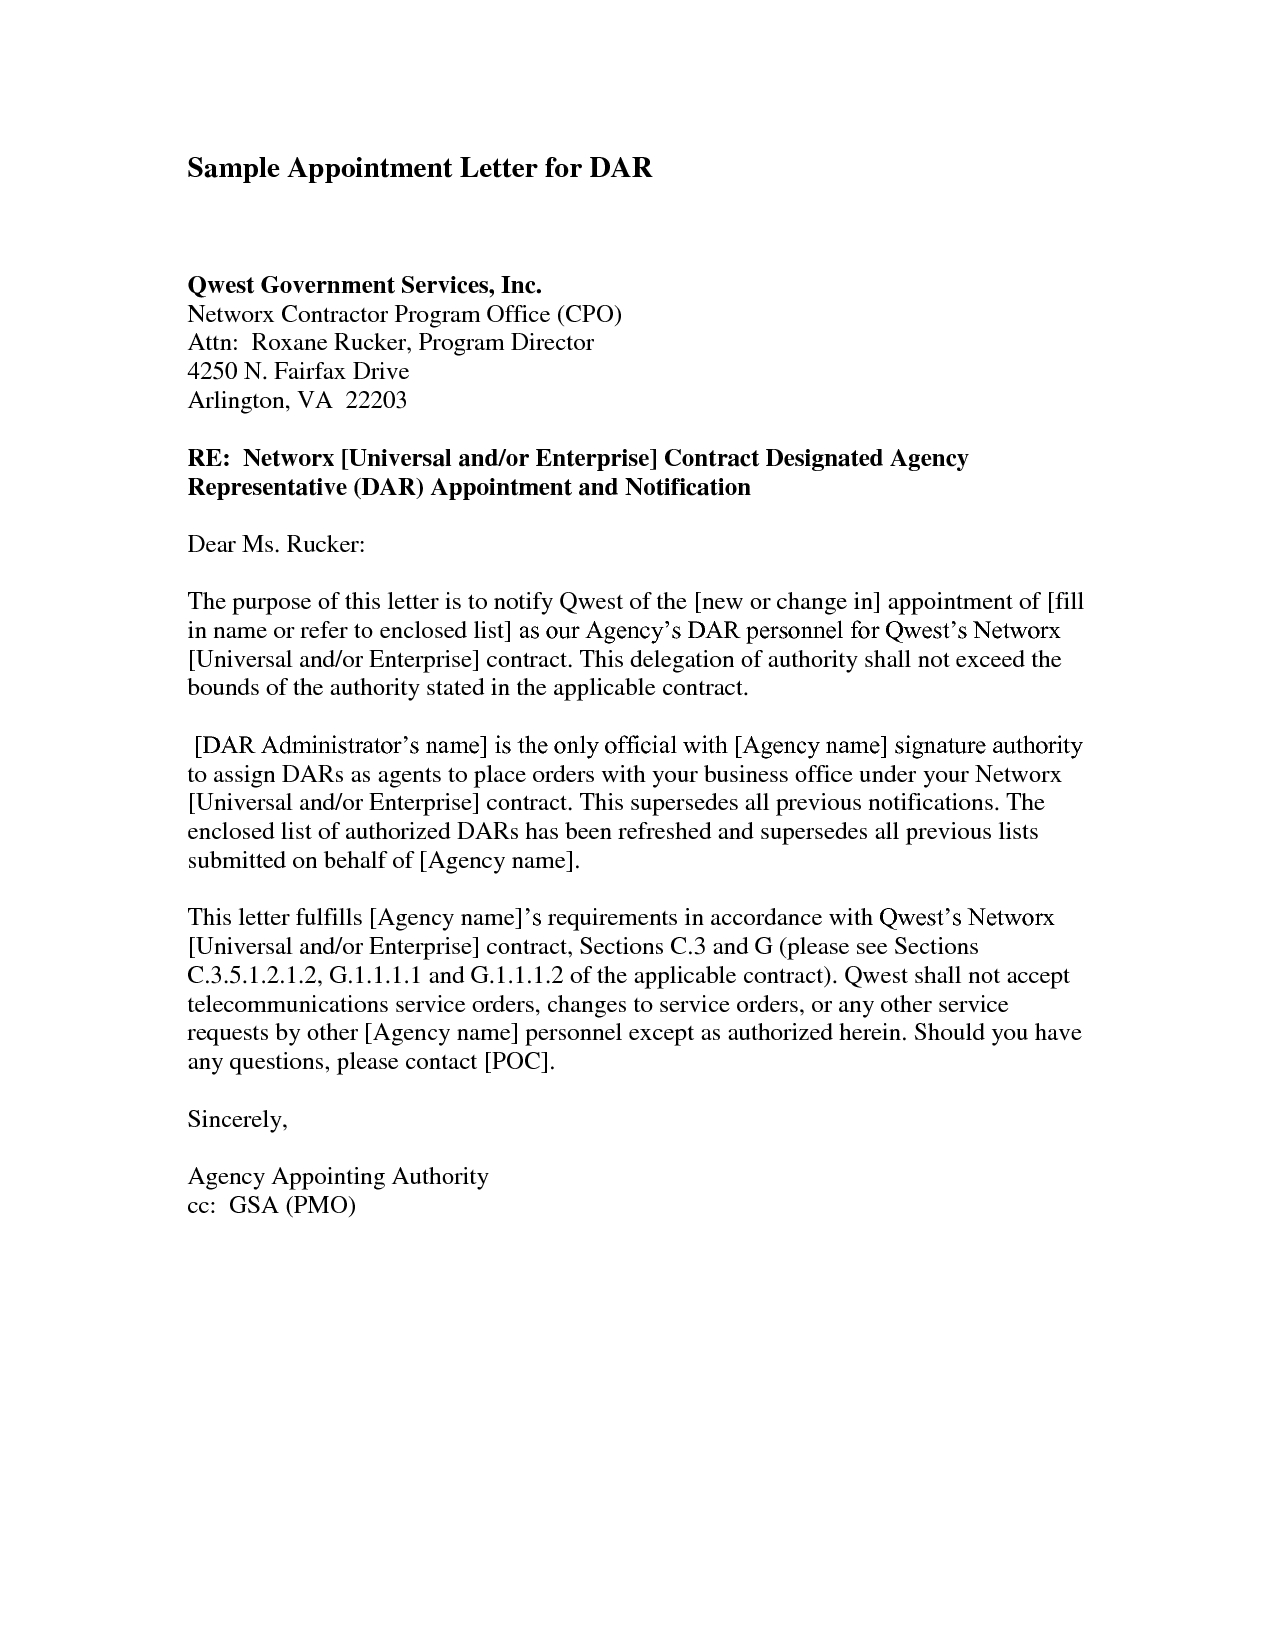 Financial Hardship Letter Template - Trustee Appointment Letter Director Trustee is Appointed or